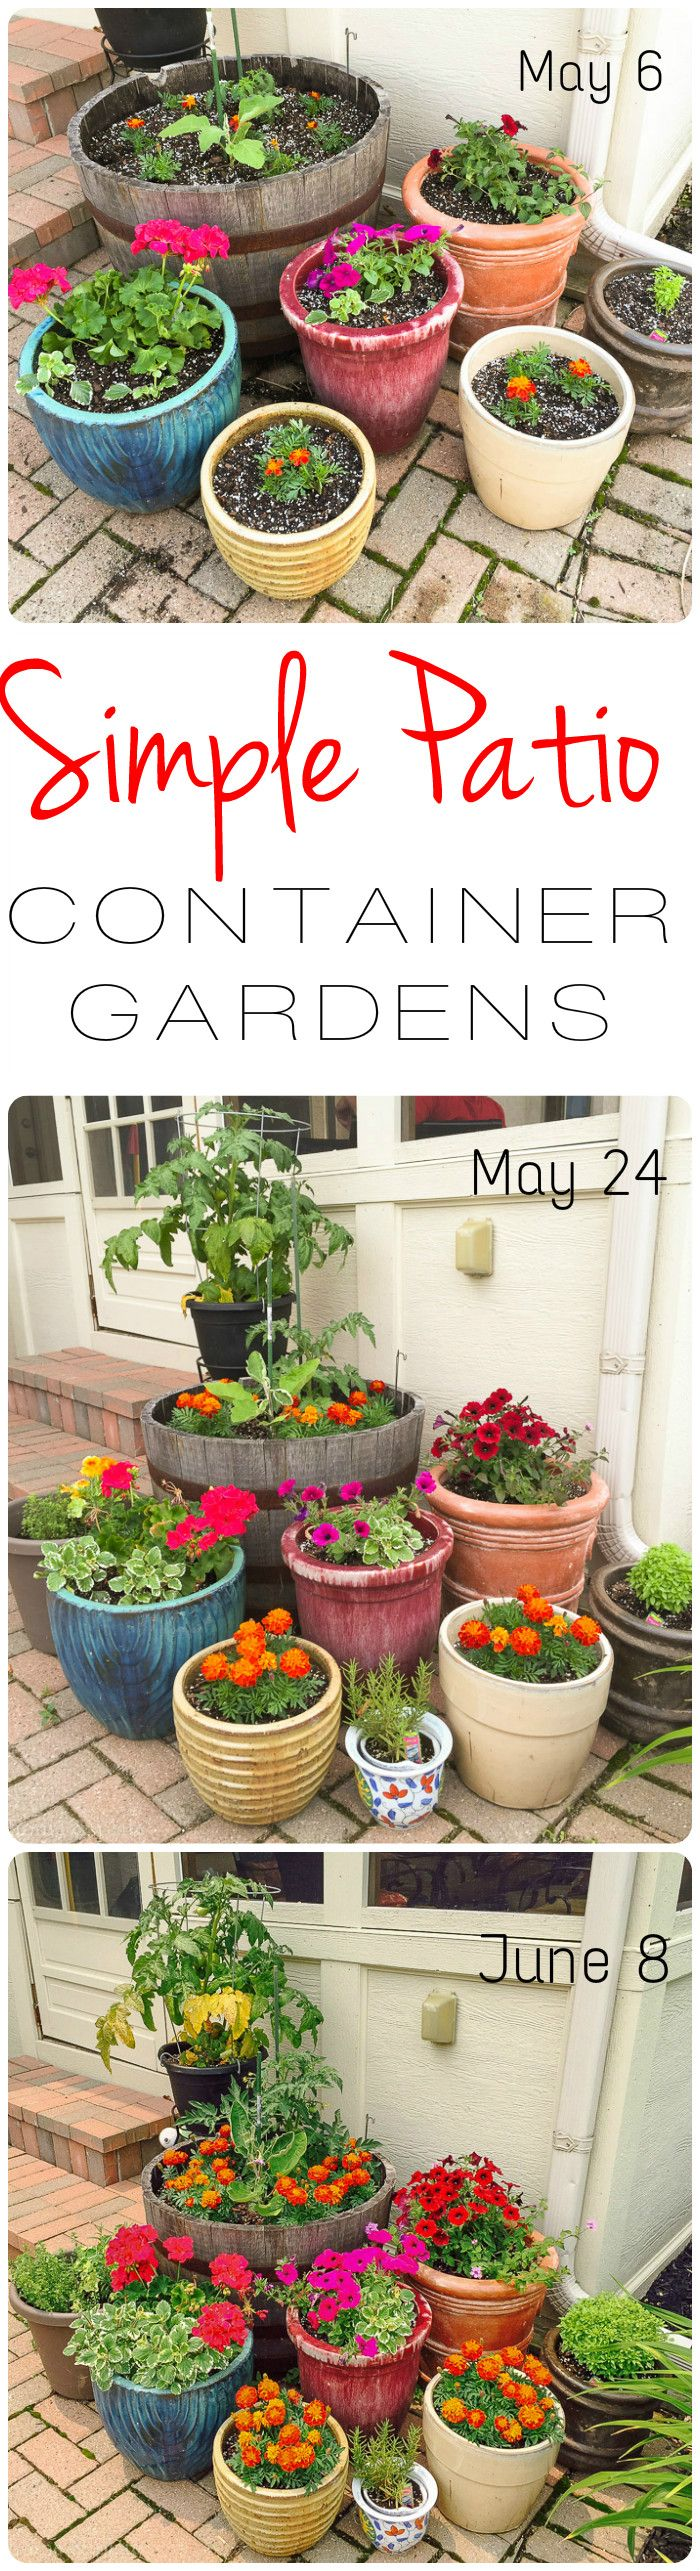 Simple Patio Container Gardens | Home & Plate | www.homeandplate.com | In a month's time, your container garden can go from now to WOW!